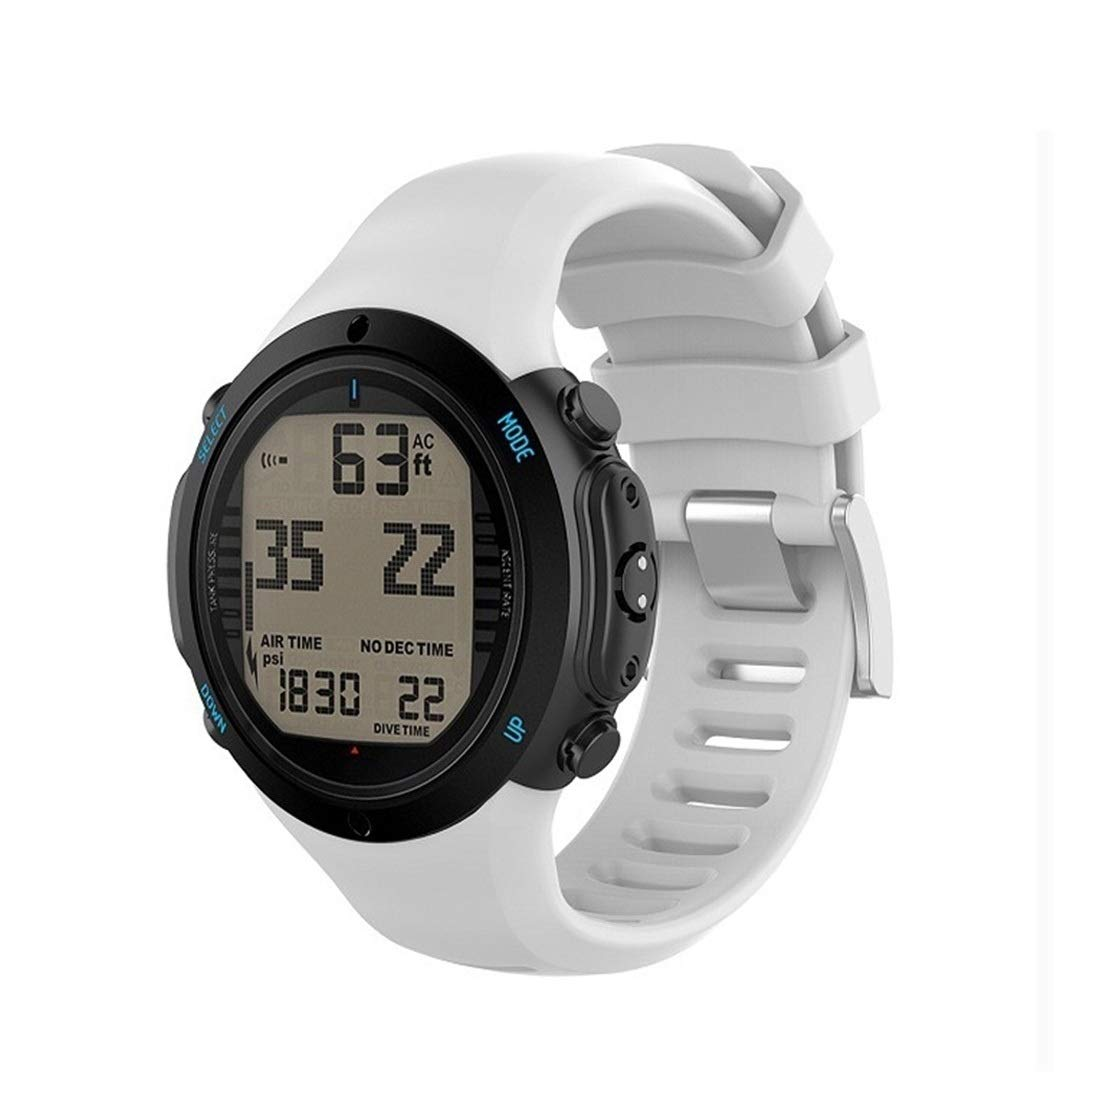 Smart Watch Silicone Wrist Strap Watchband for Suunto D6i Premium Quality (Color : White) by GuiPing